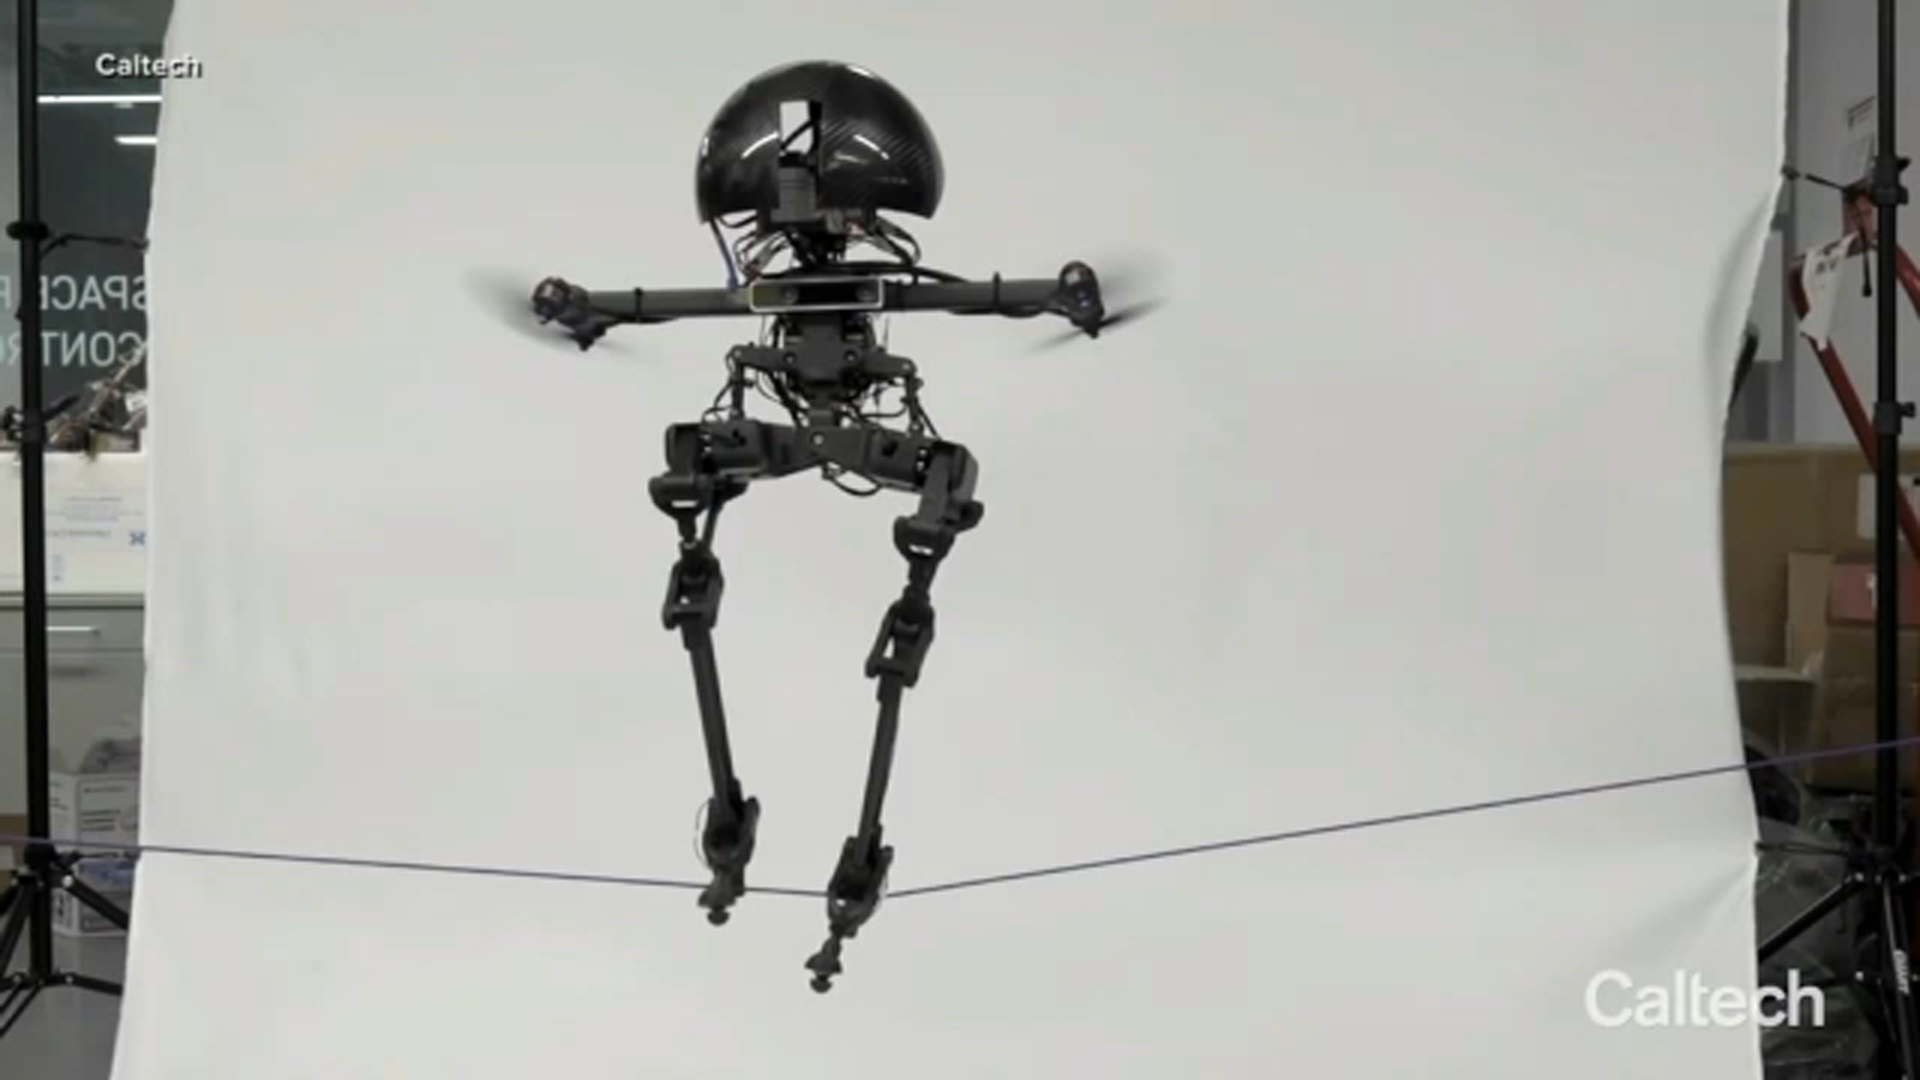 Caltech's new 'LEO' flying robot shows humans how it seamlessly moves between walking, flying - ABC7 San Francisco